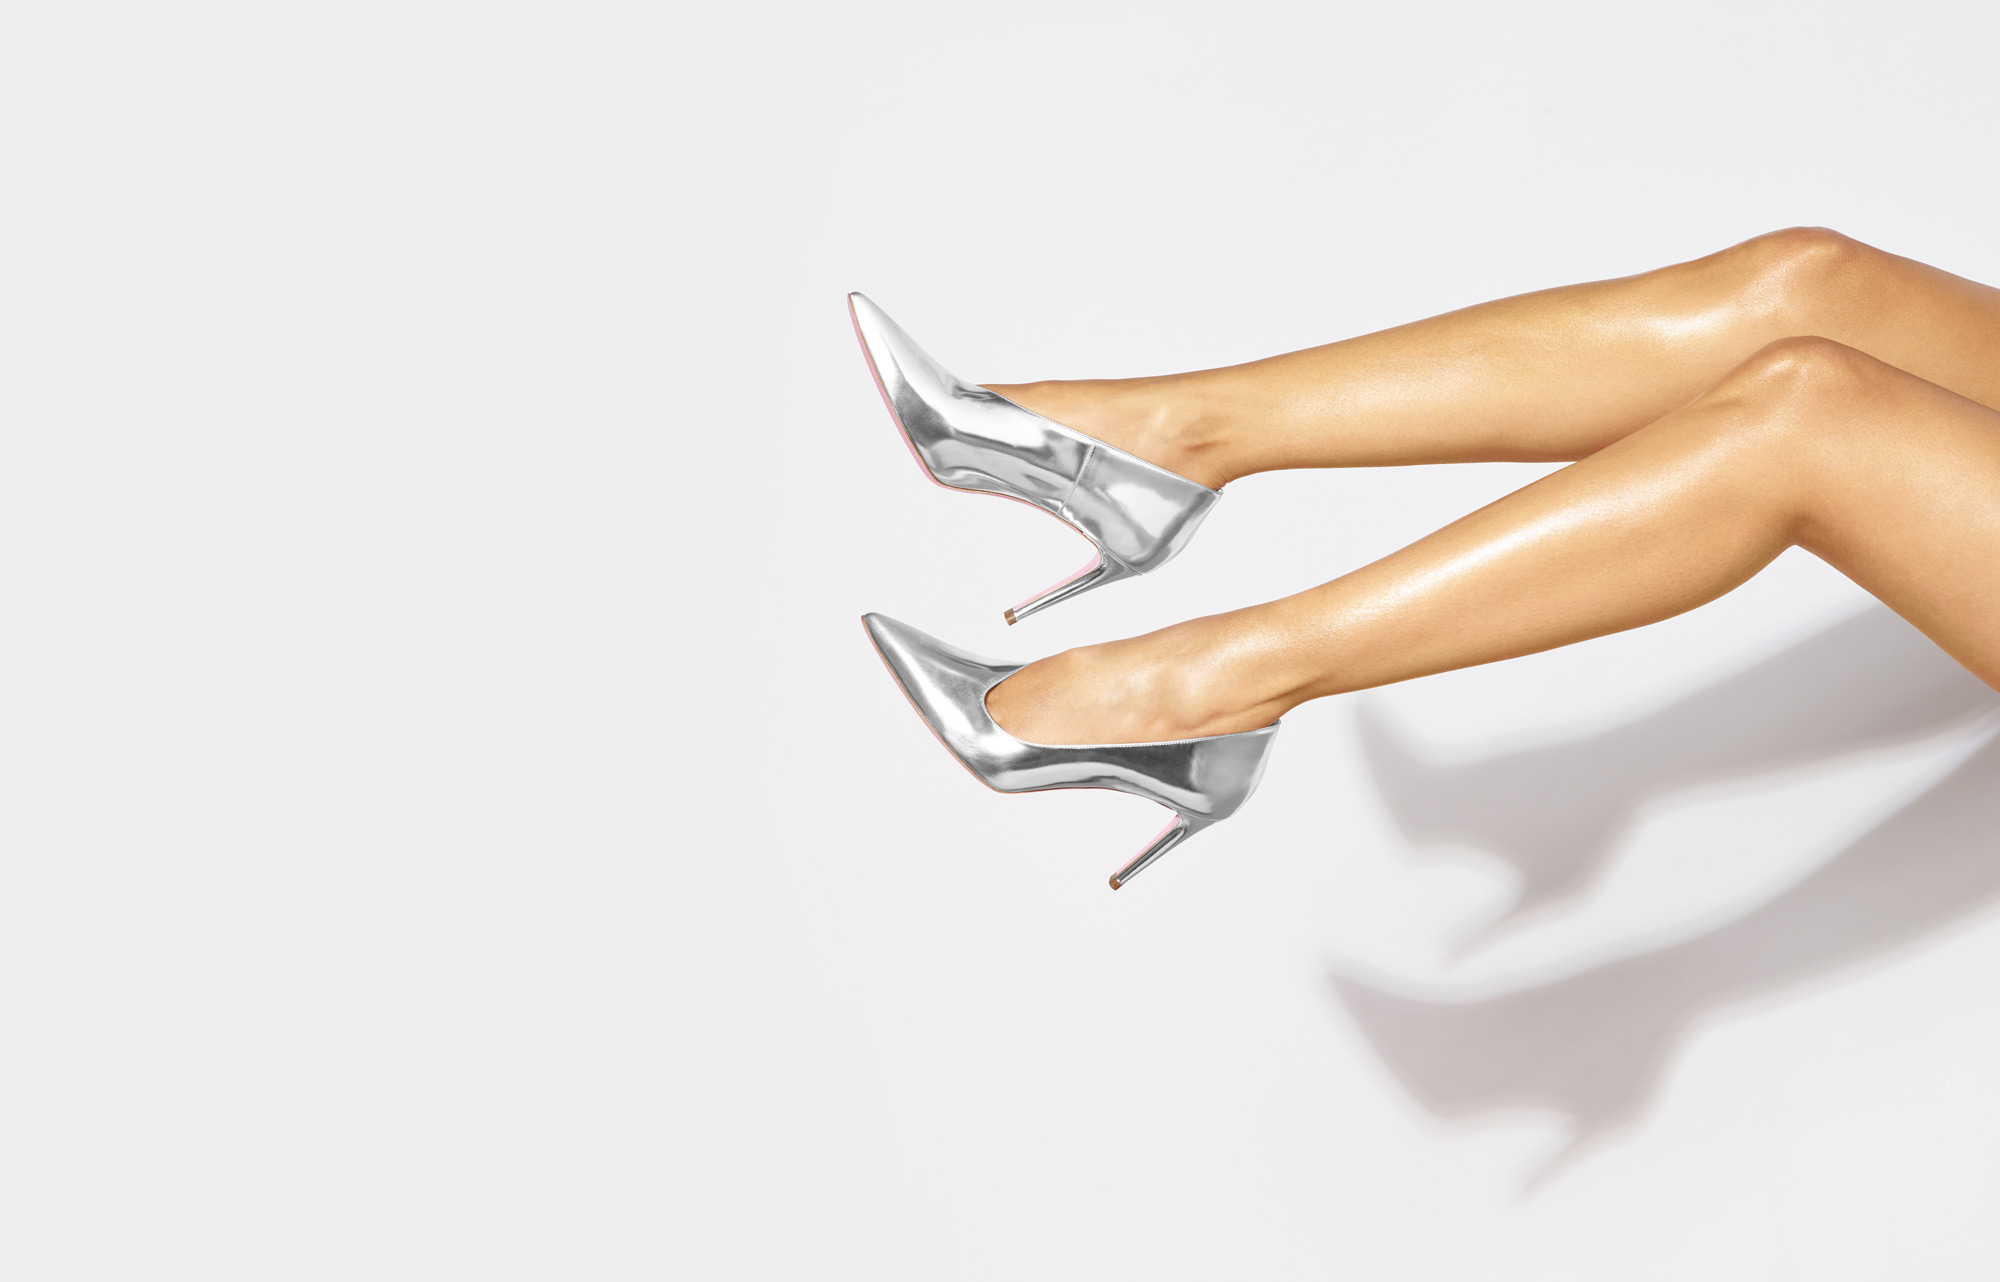 PHARE WOMENS SHOES - Identity and Website Design